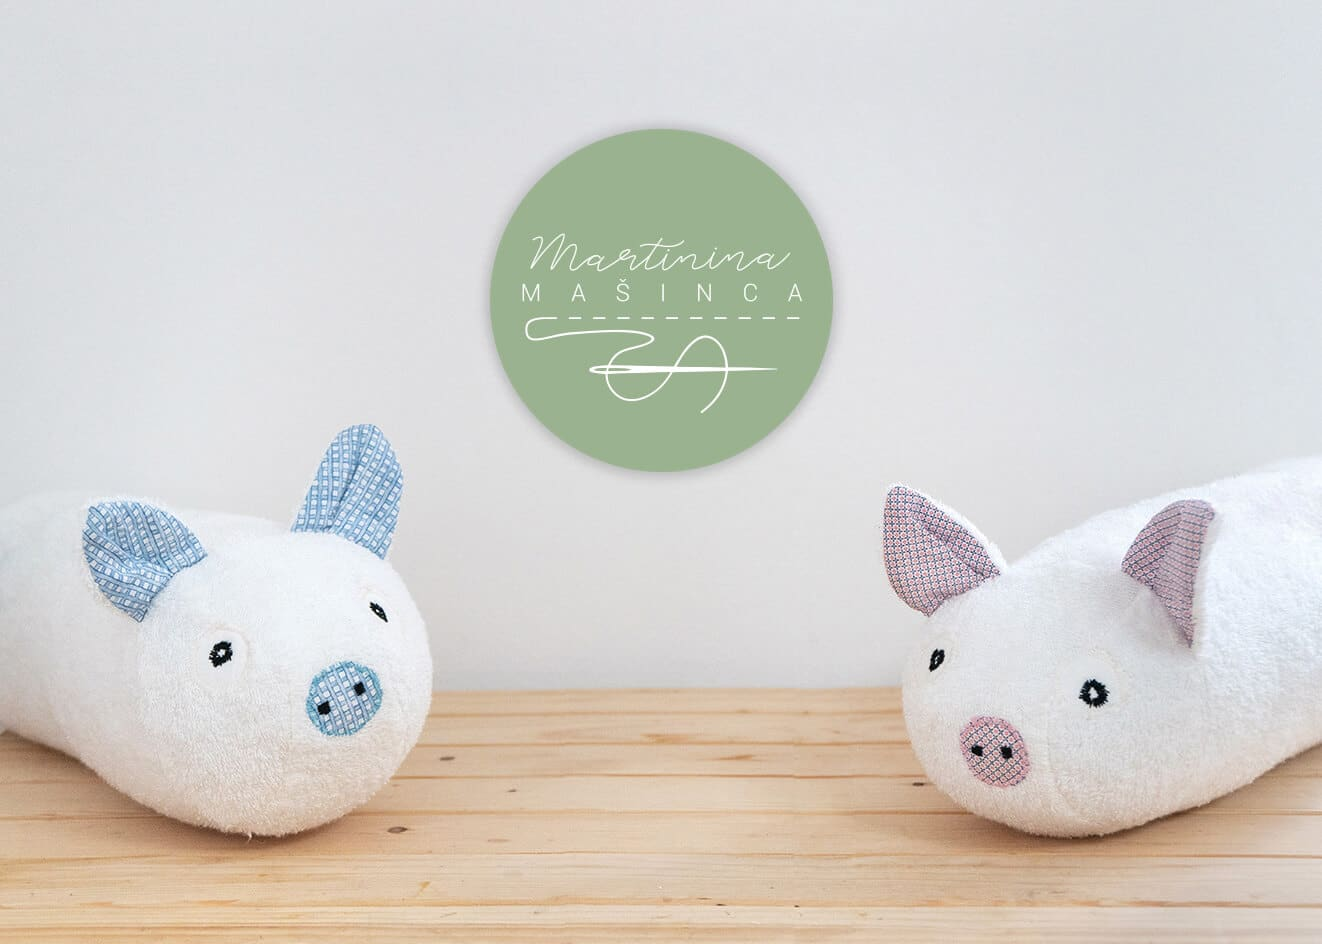 Cover photo, piglet with logo2